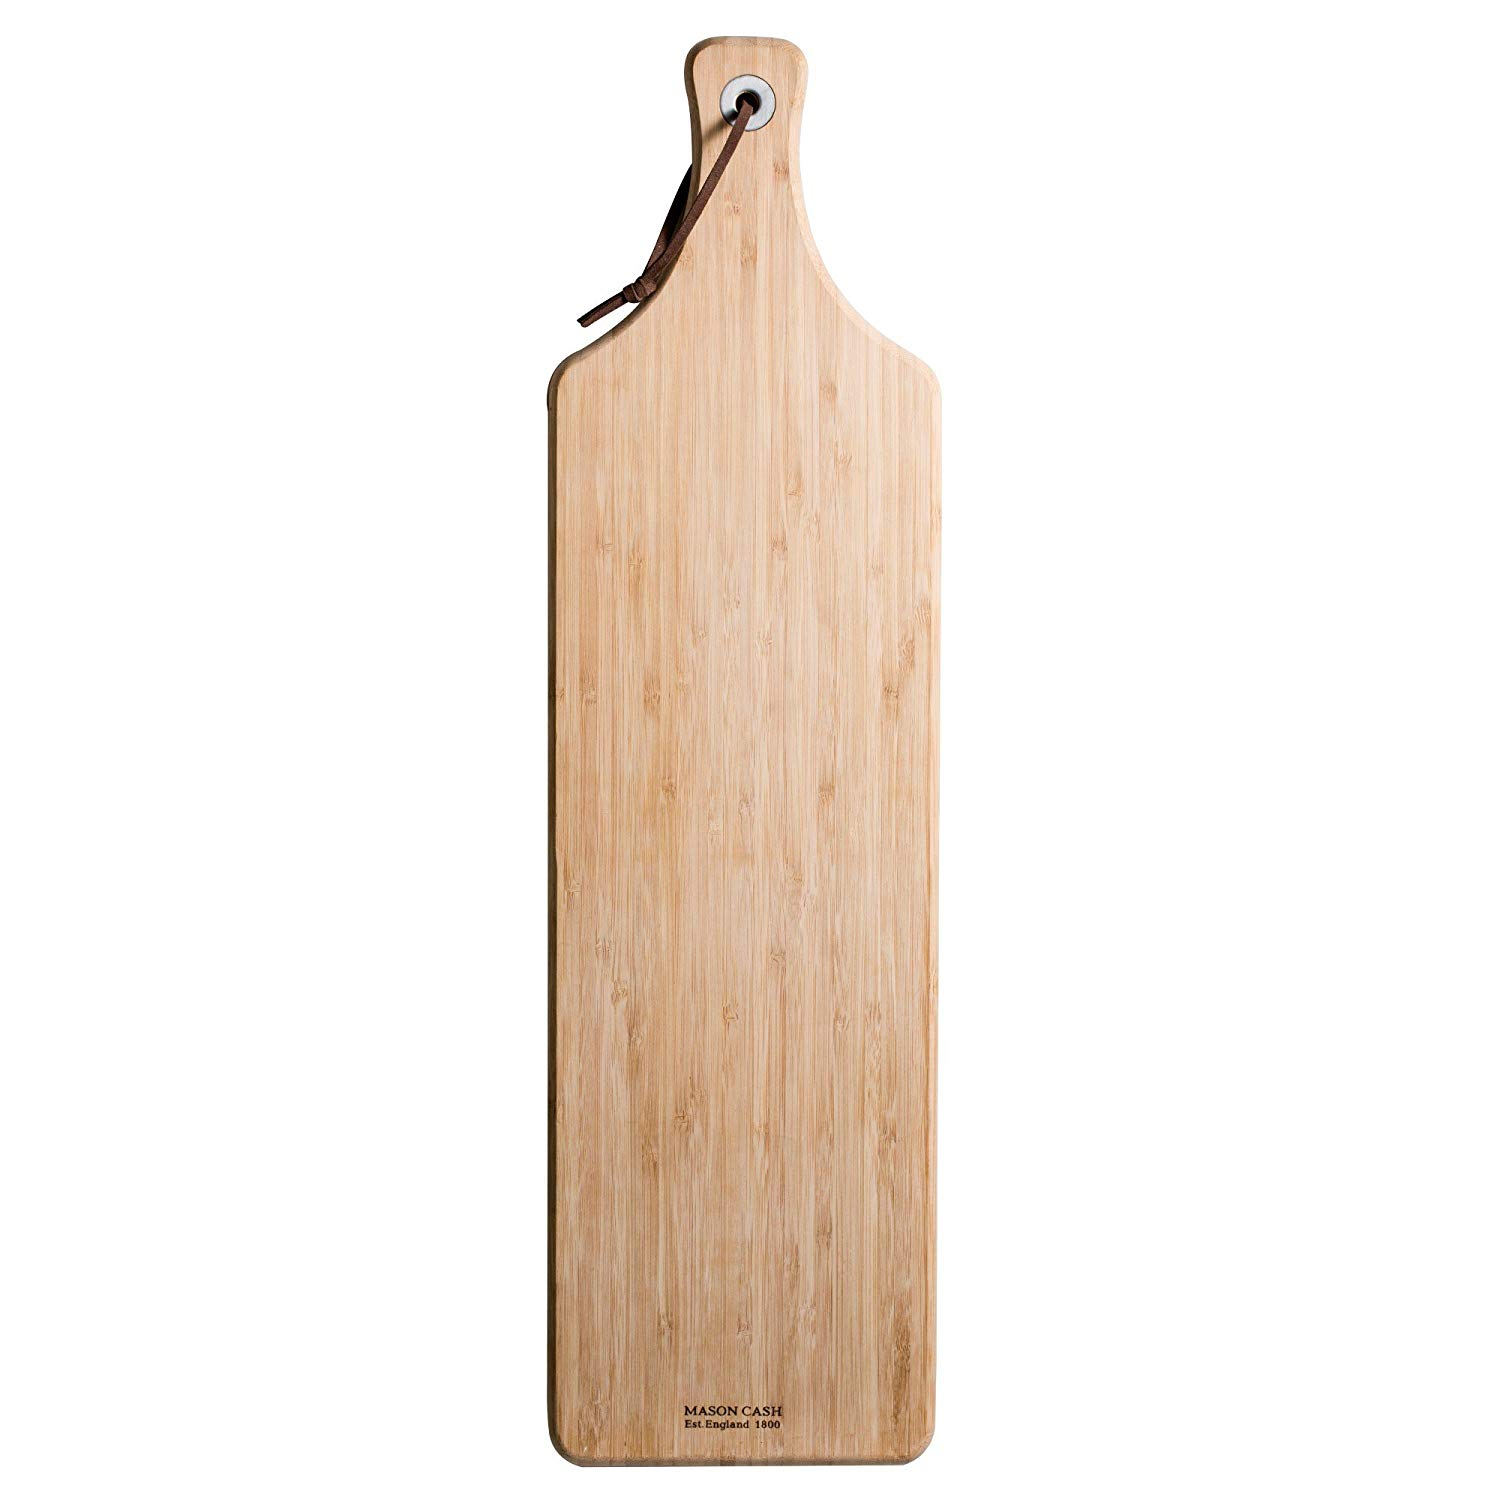 "Mason Cash Essentials Large Serving Board, Sustainable Bamboo Cutting Board With Leather Hanging Loop, 23-1/4x 6-1/4"", Ideal for Charcuterie, Cheese, Antipasto Platters and Bread"